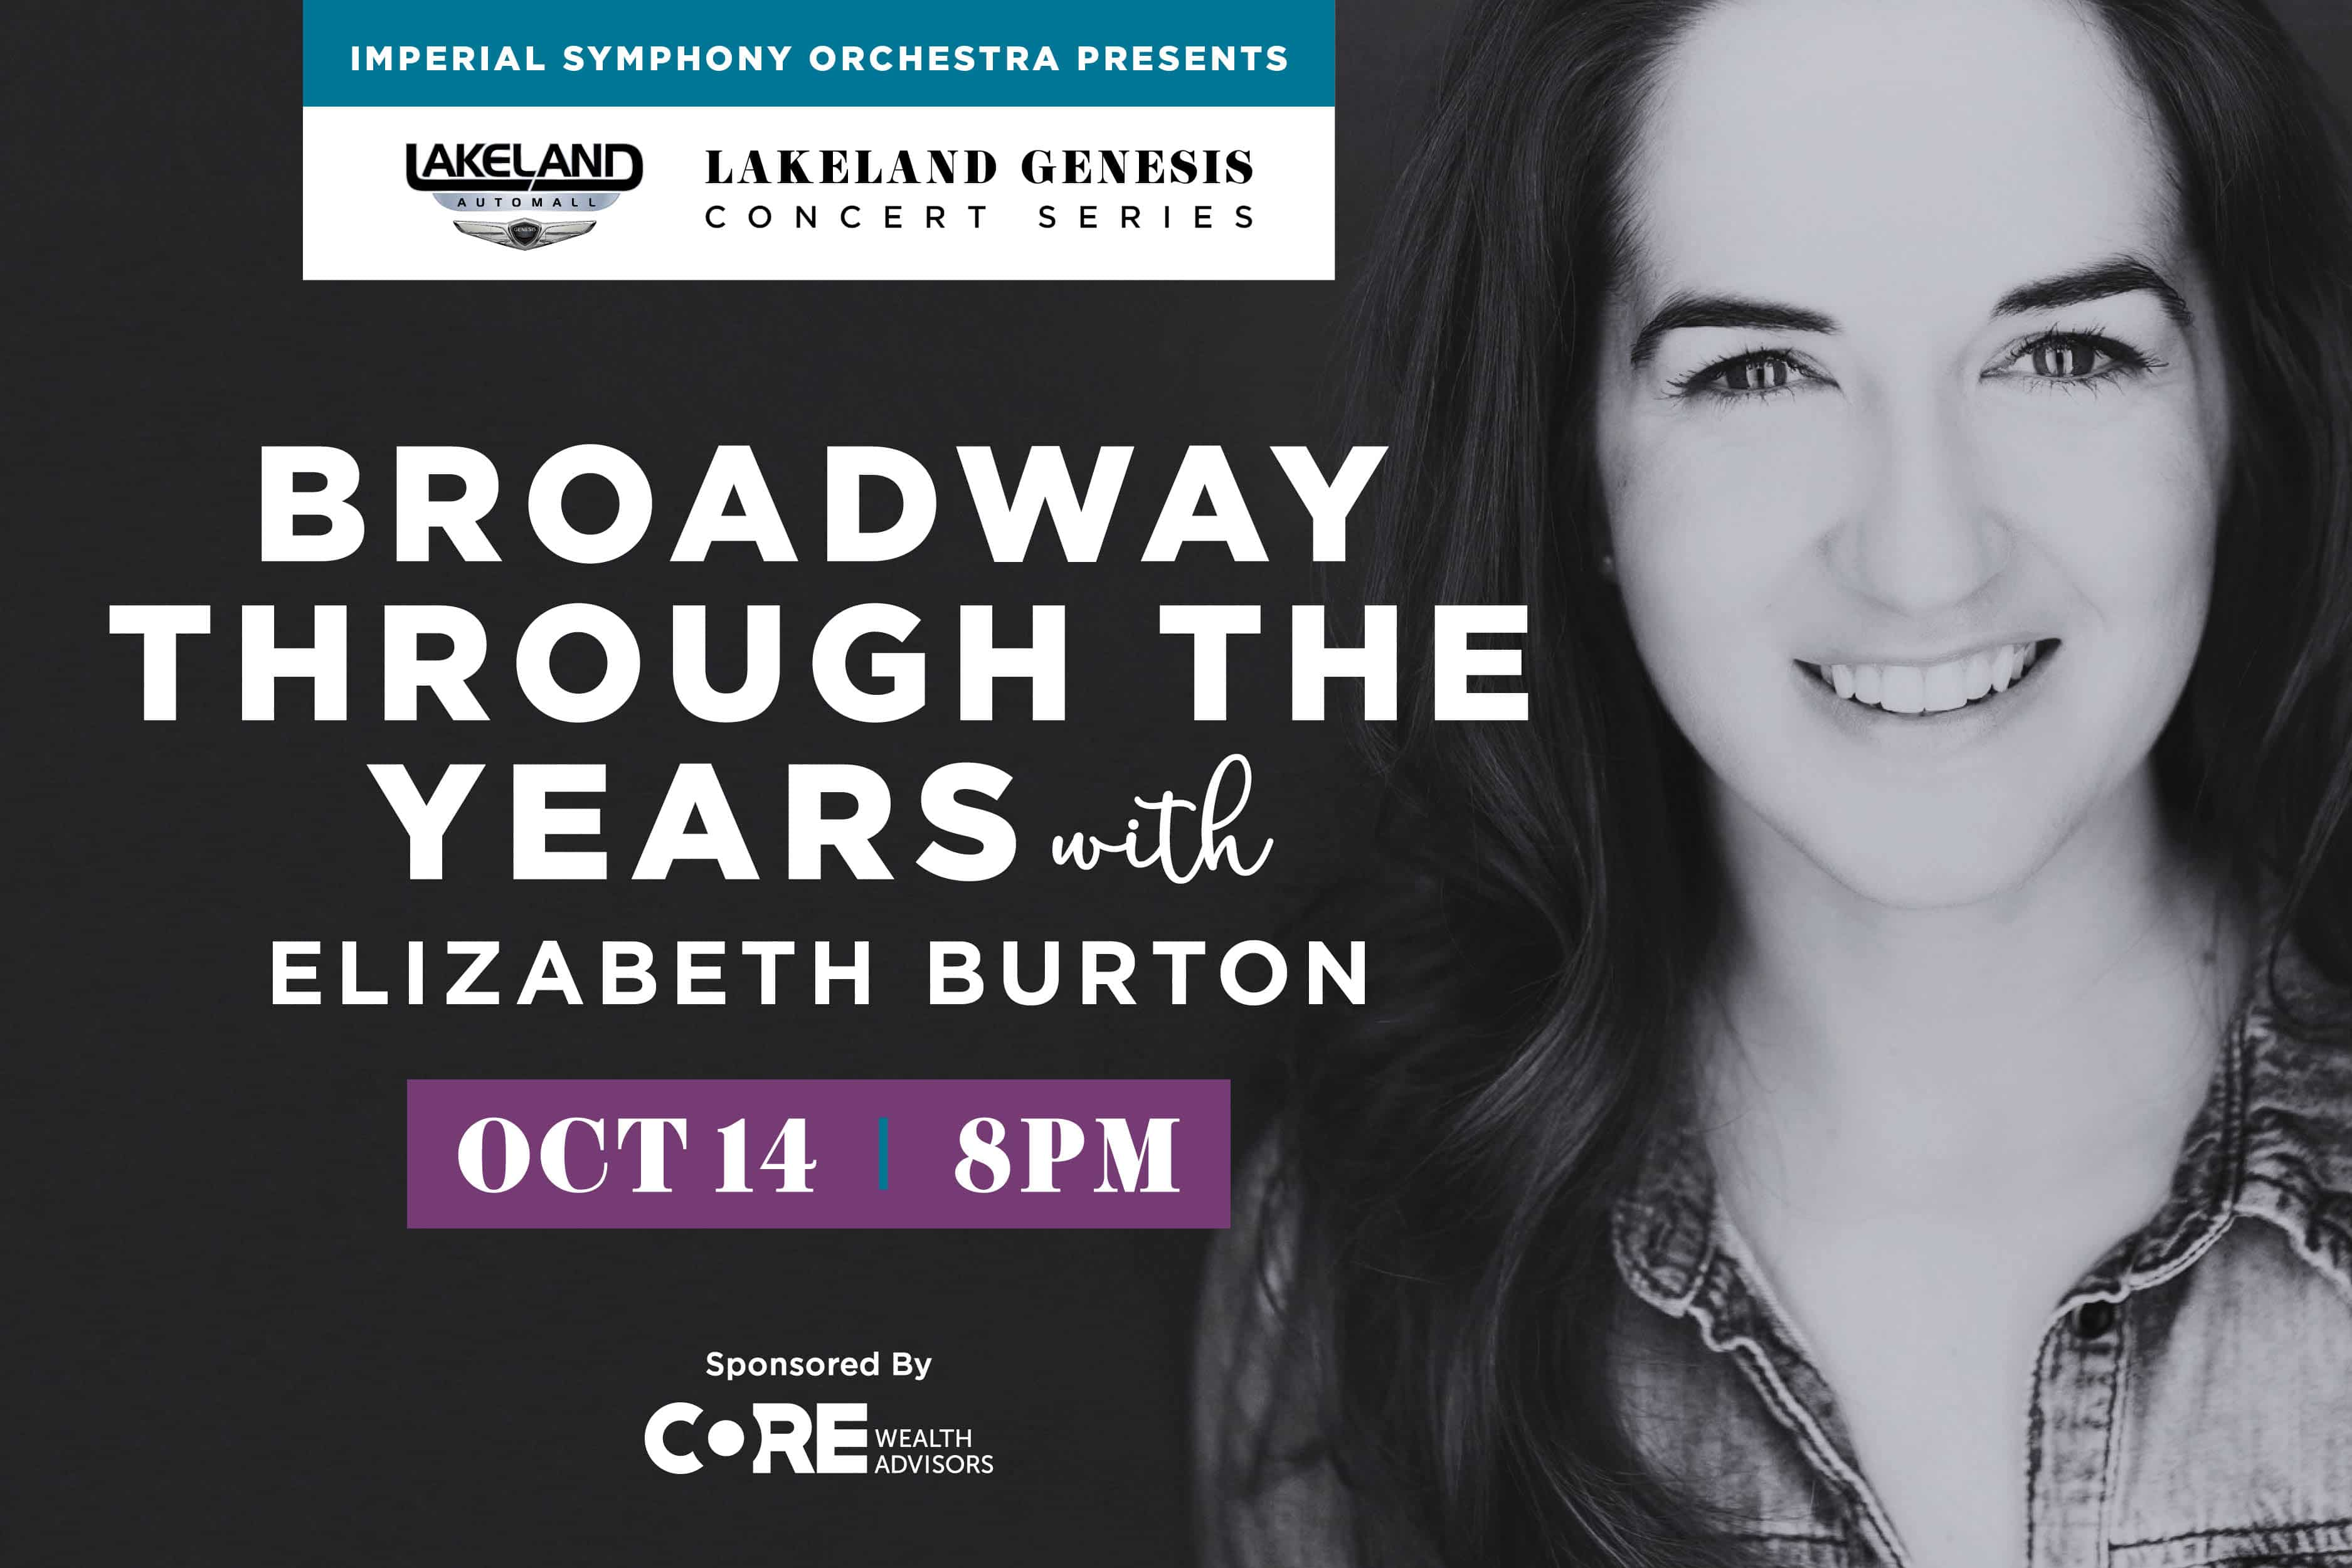 20171014 Broadway Through the Years